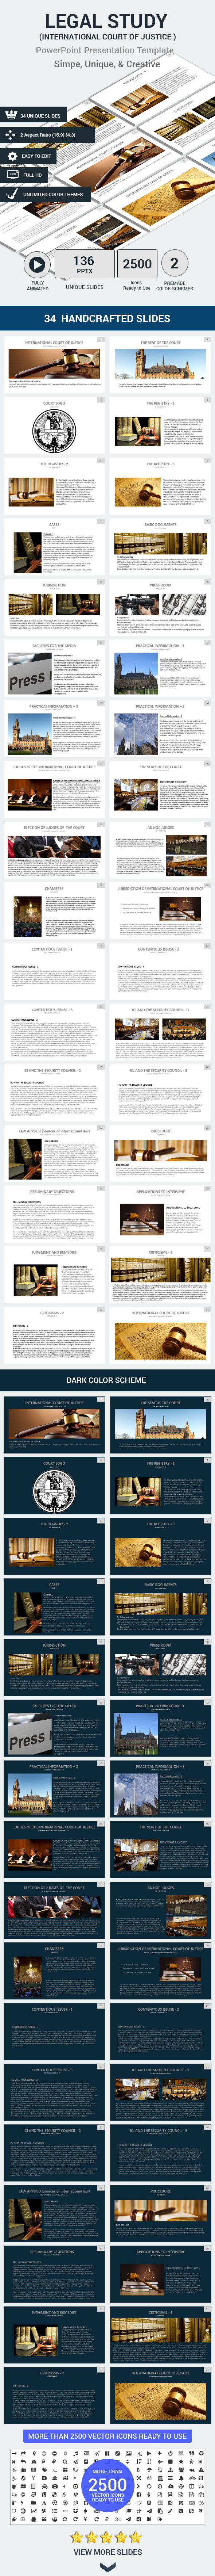 Legal Study International Court Of Justice Powerpoint Templates